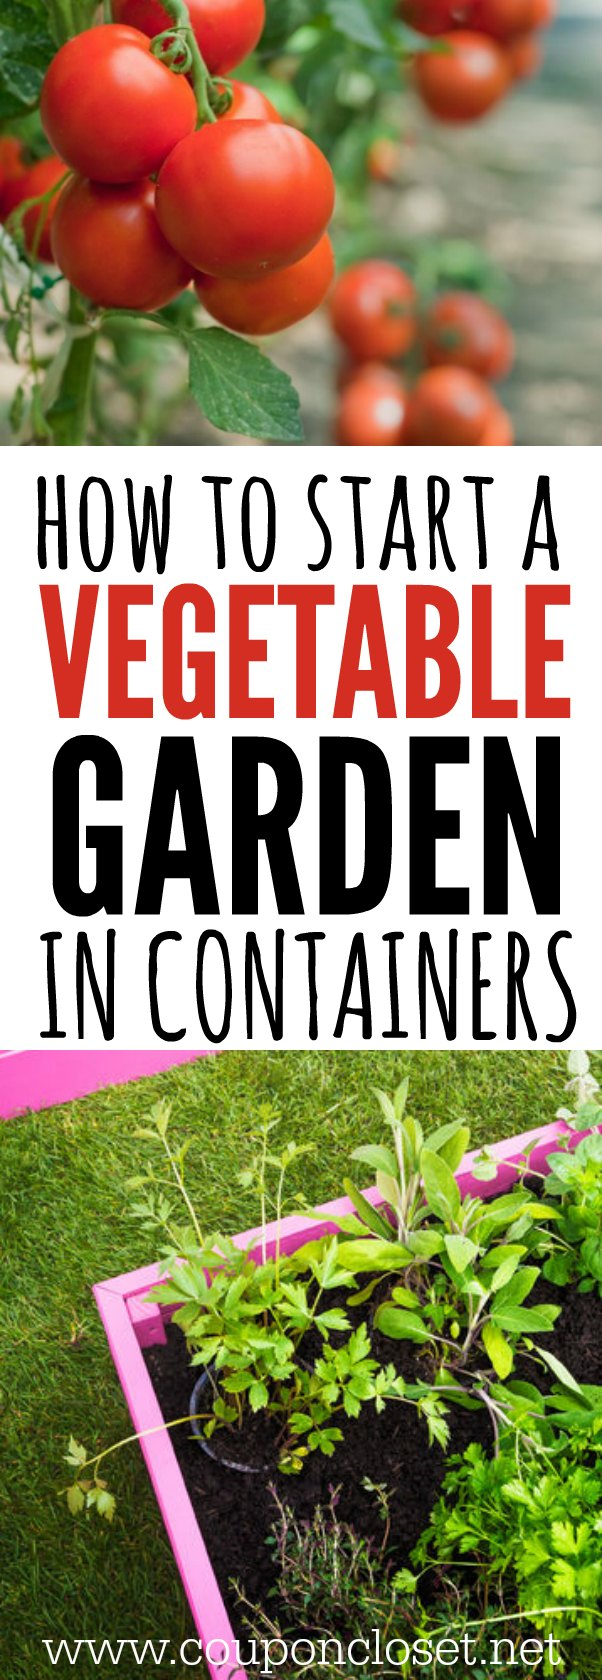 Container gardening how to start a ve able garden Growing ve ables in containers is much